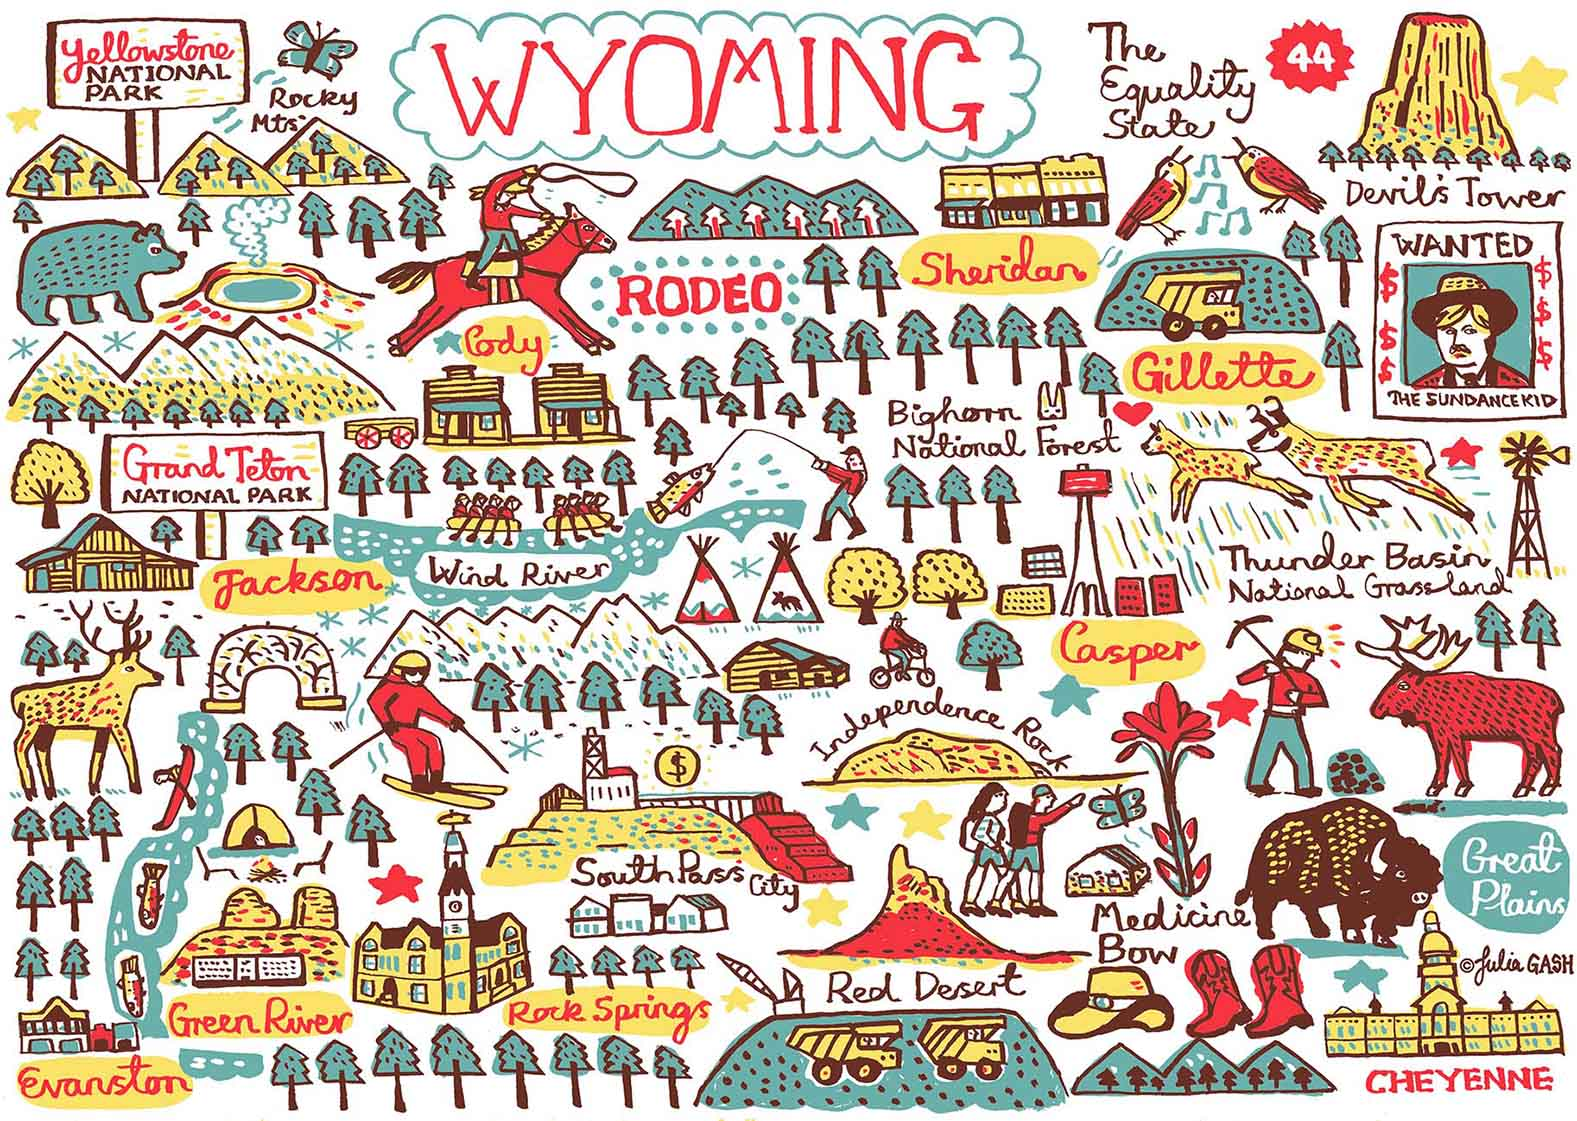 Wyoming Art Print - Julia Gash